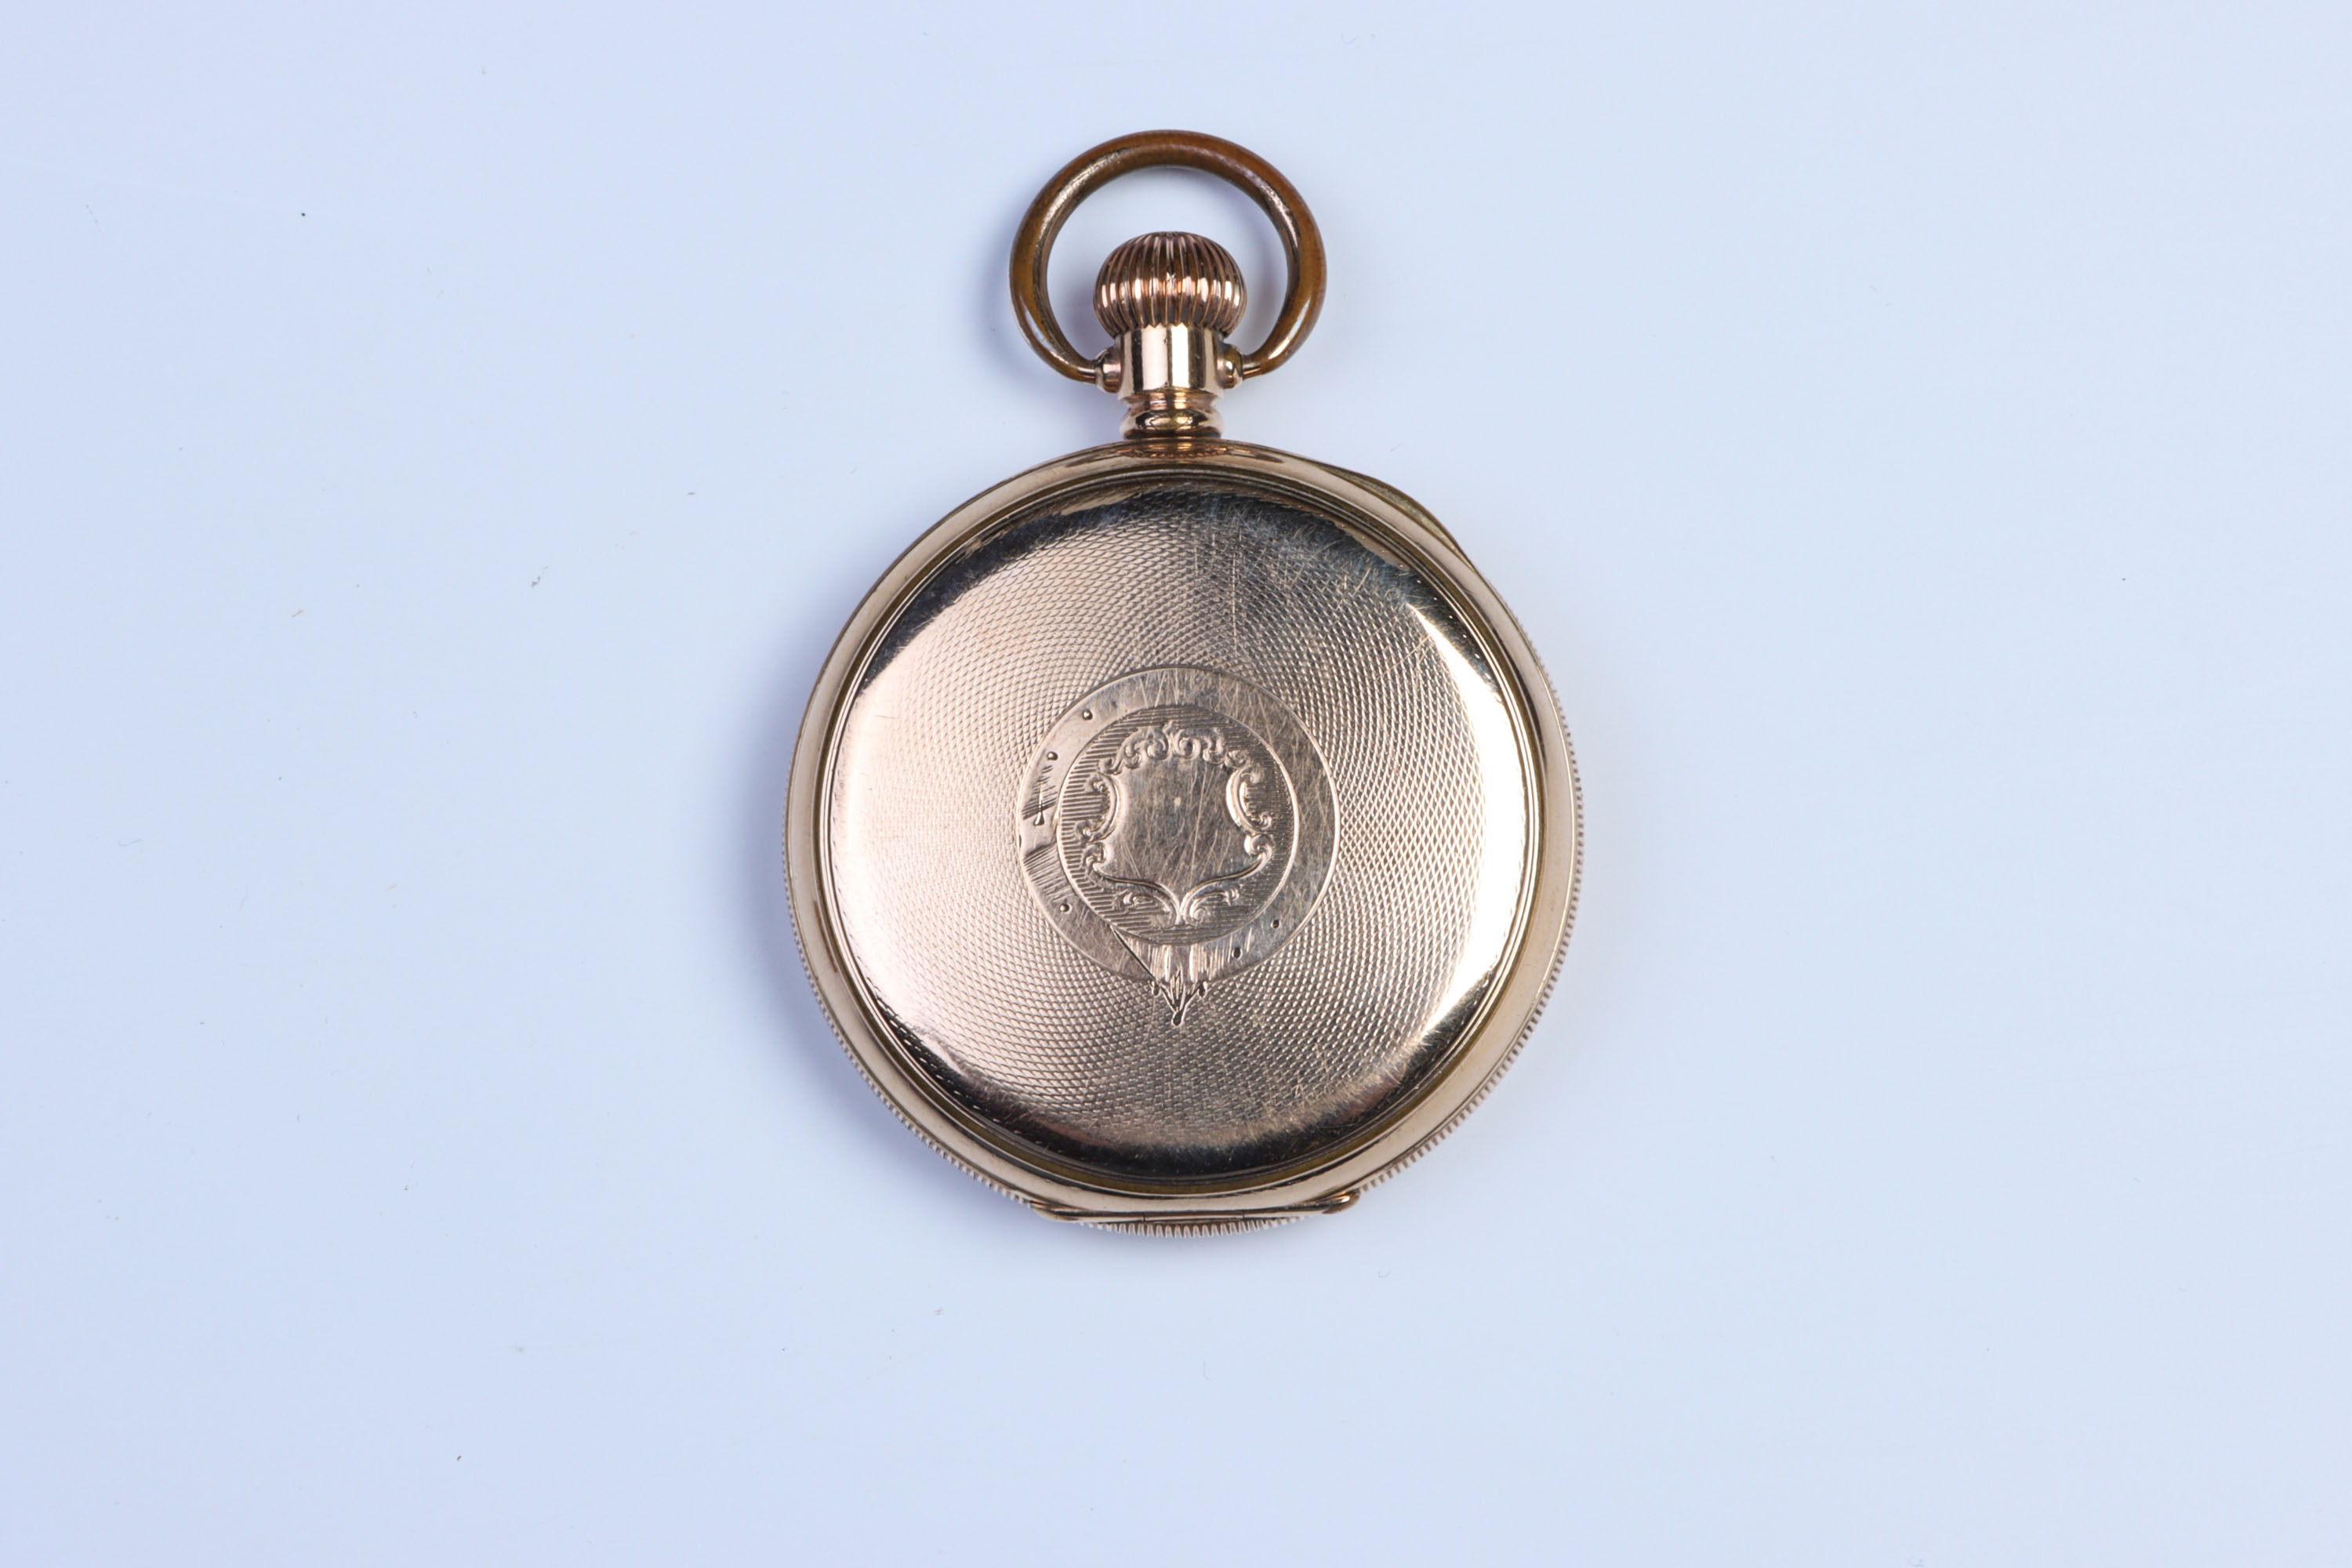 A Gold-Plated Pocket Watch, - Image 3 of 3